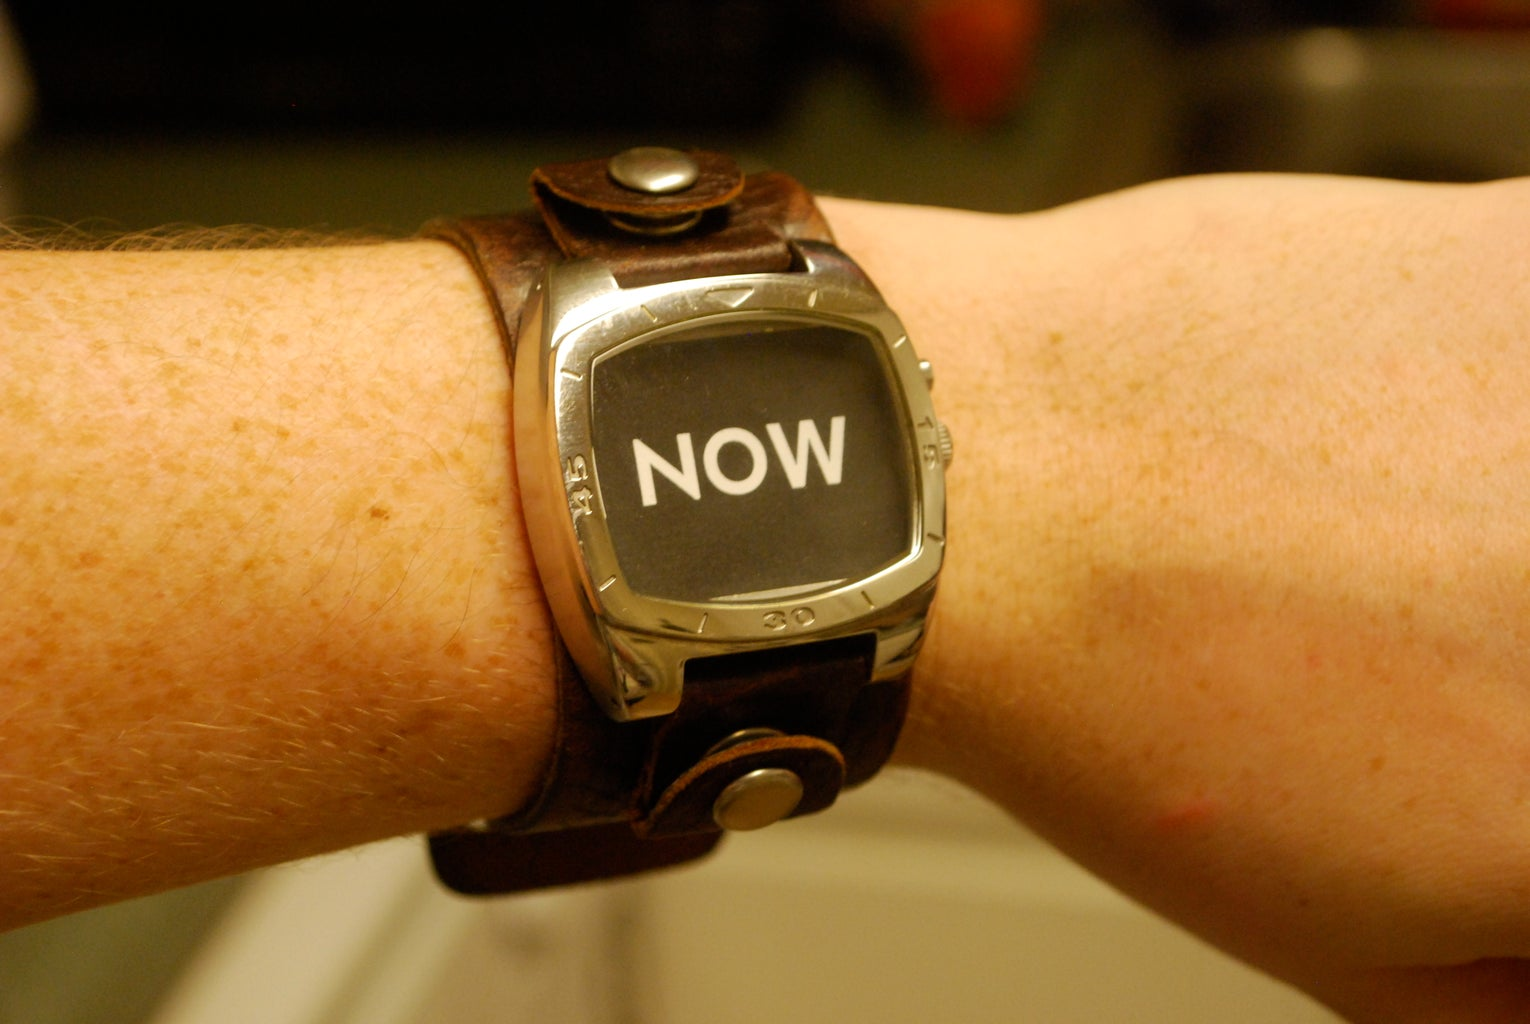 Glue on Your Design and Wear Your Watch!